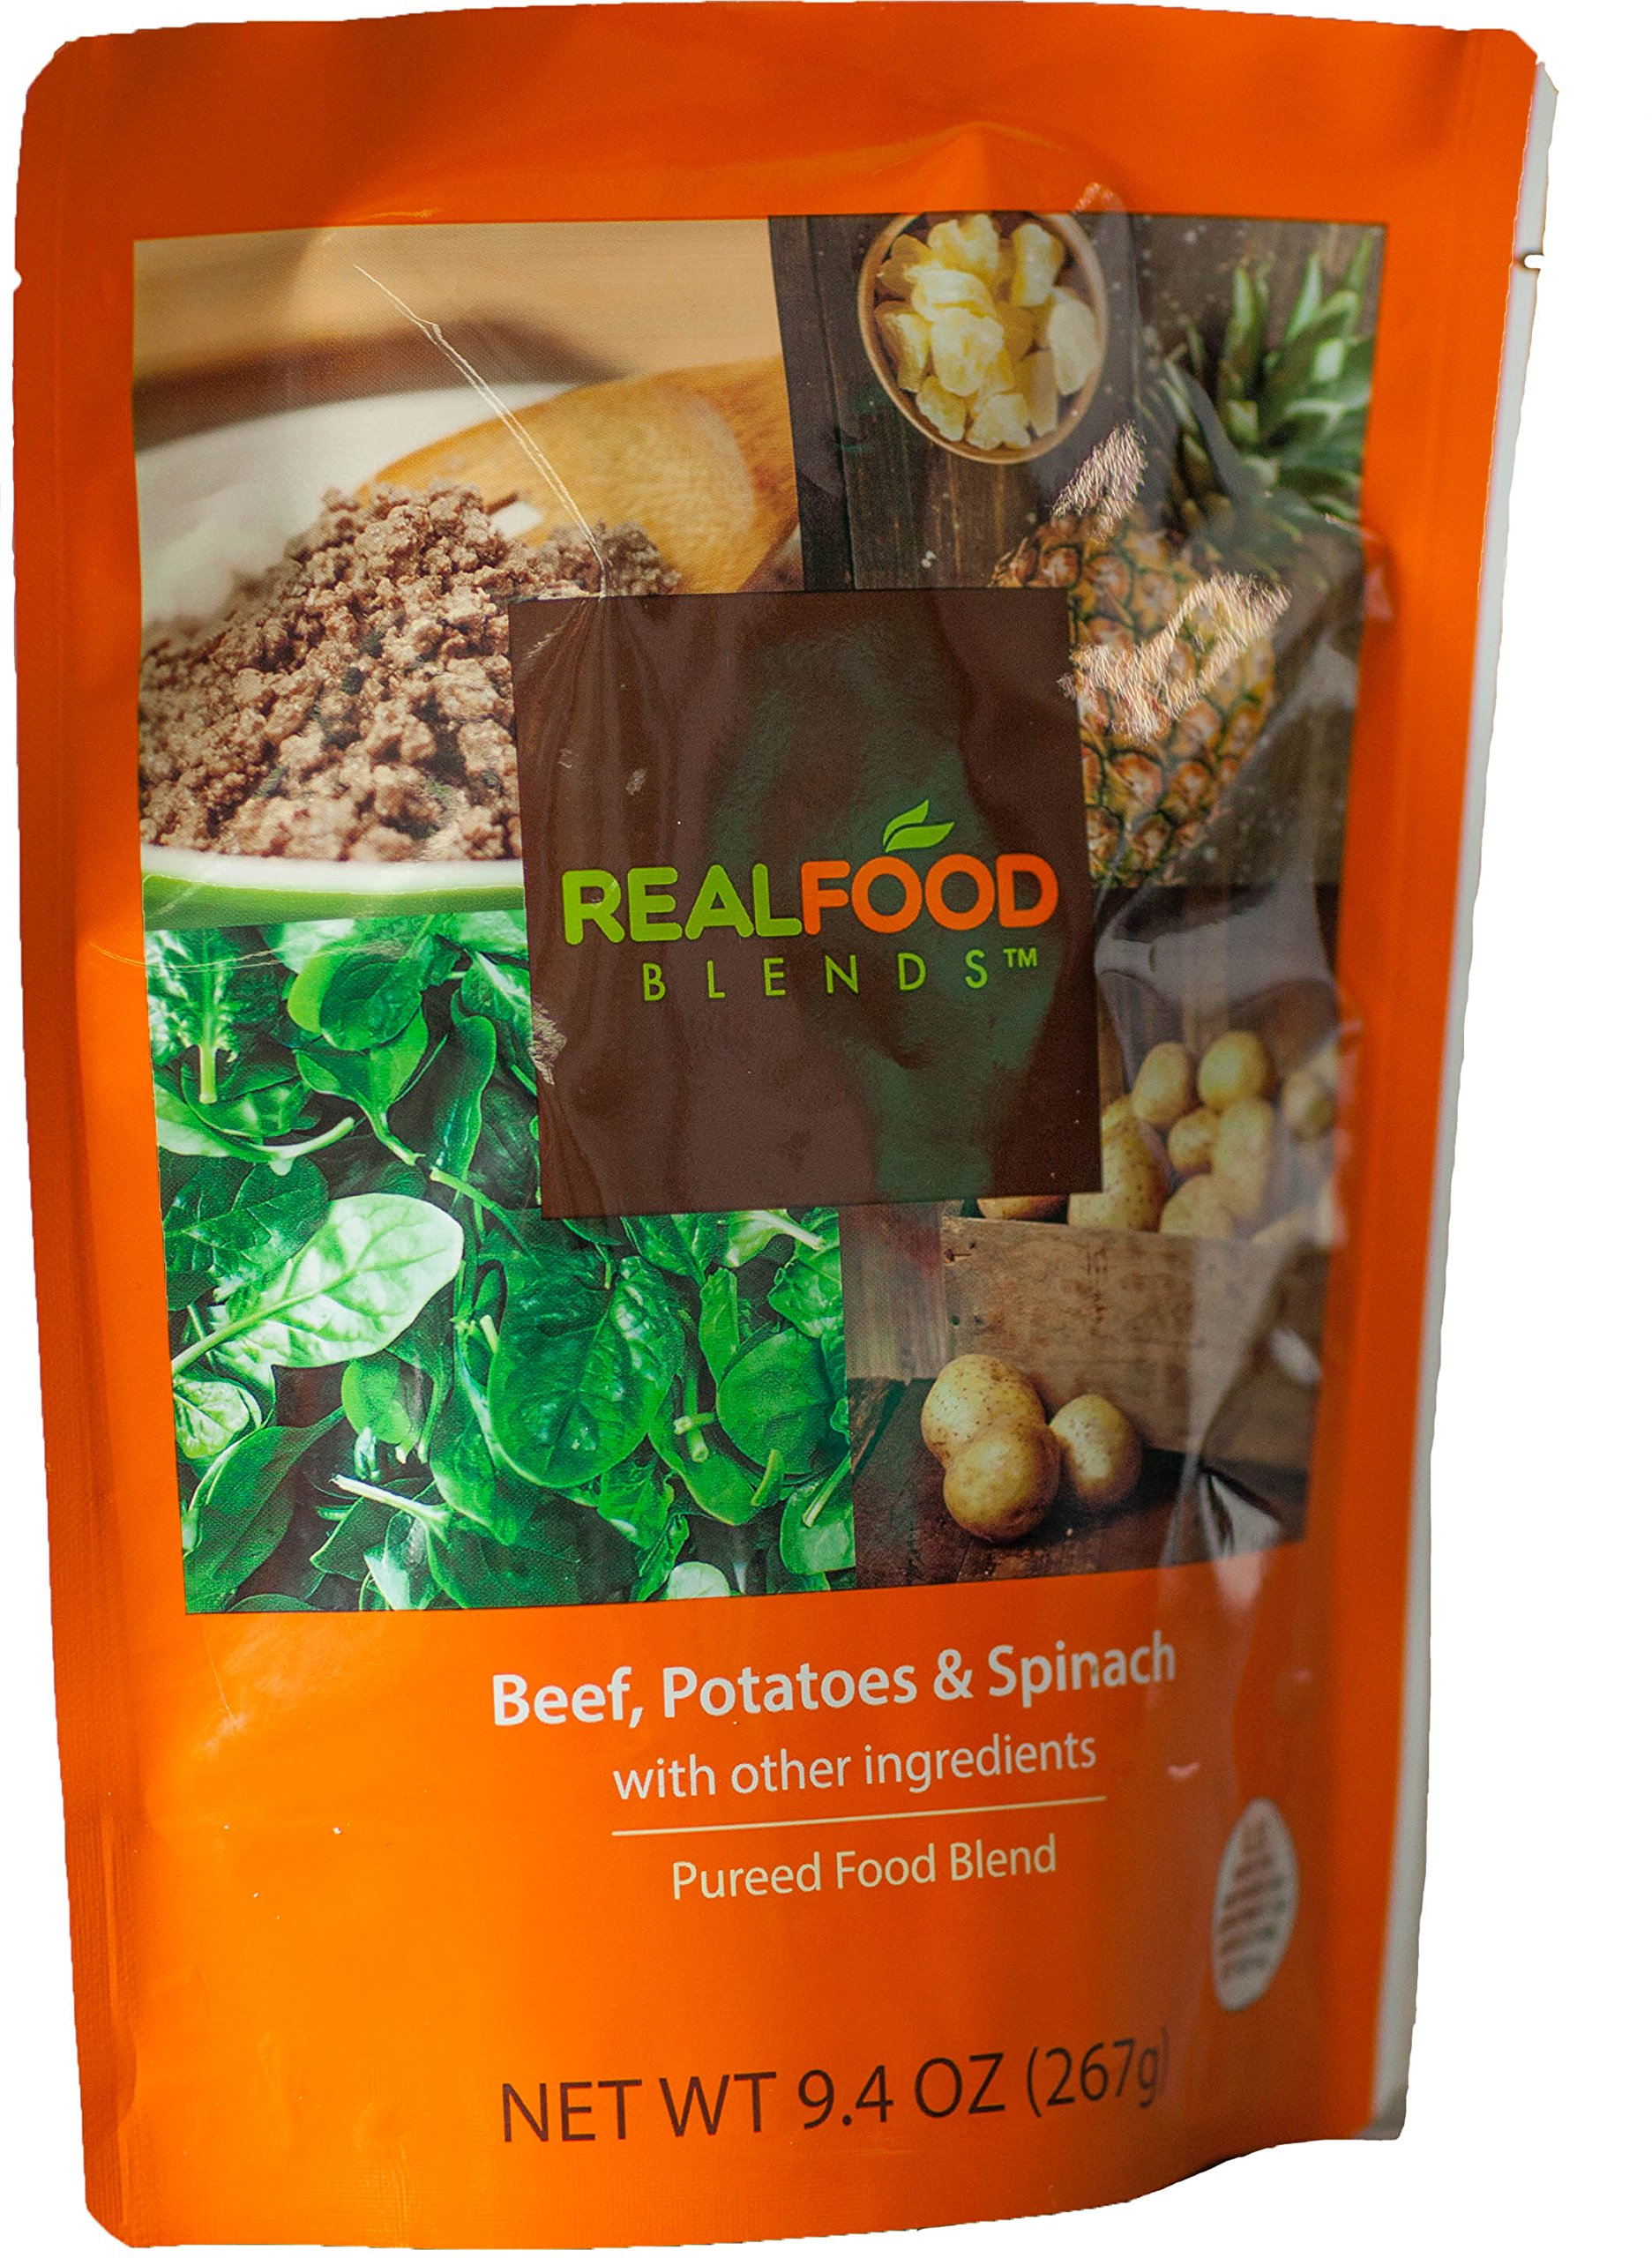 Real Food Blends Beef, Potatoes & Peas Pureed Blended Meal, 9.4 Oz Package (Pack of 12) by Real Food Blends